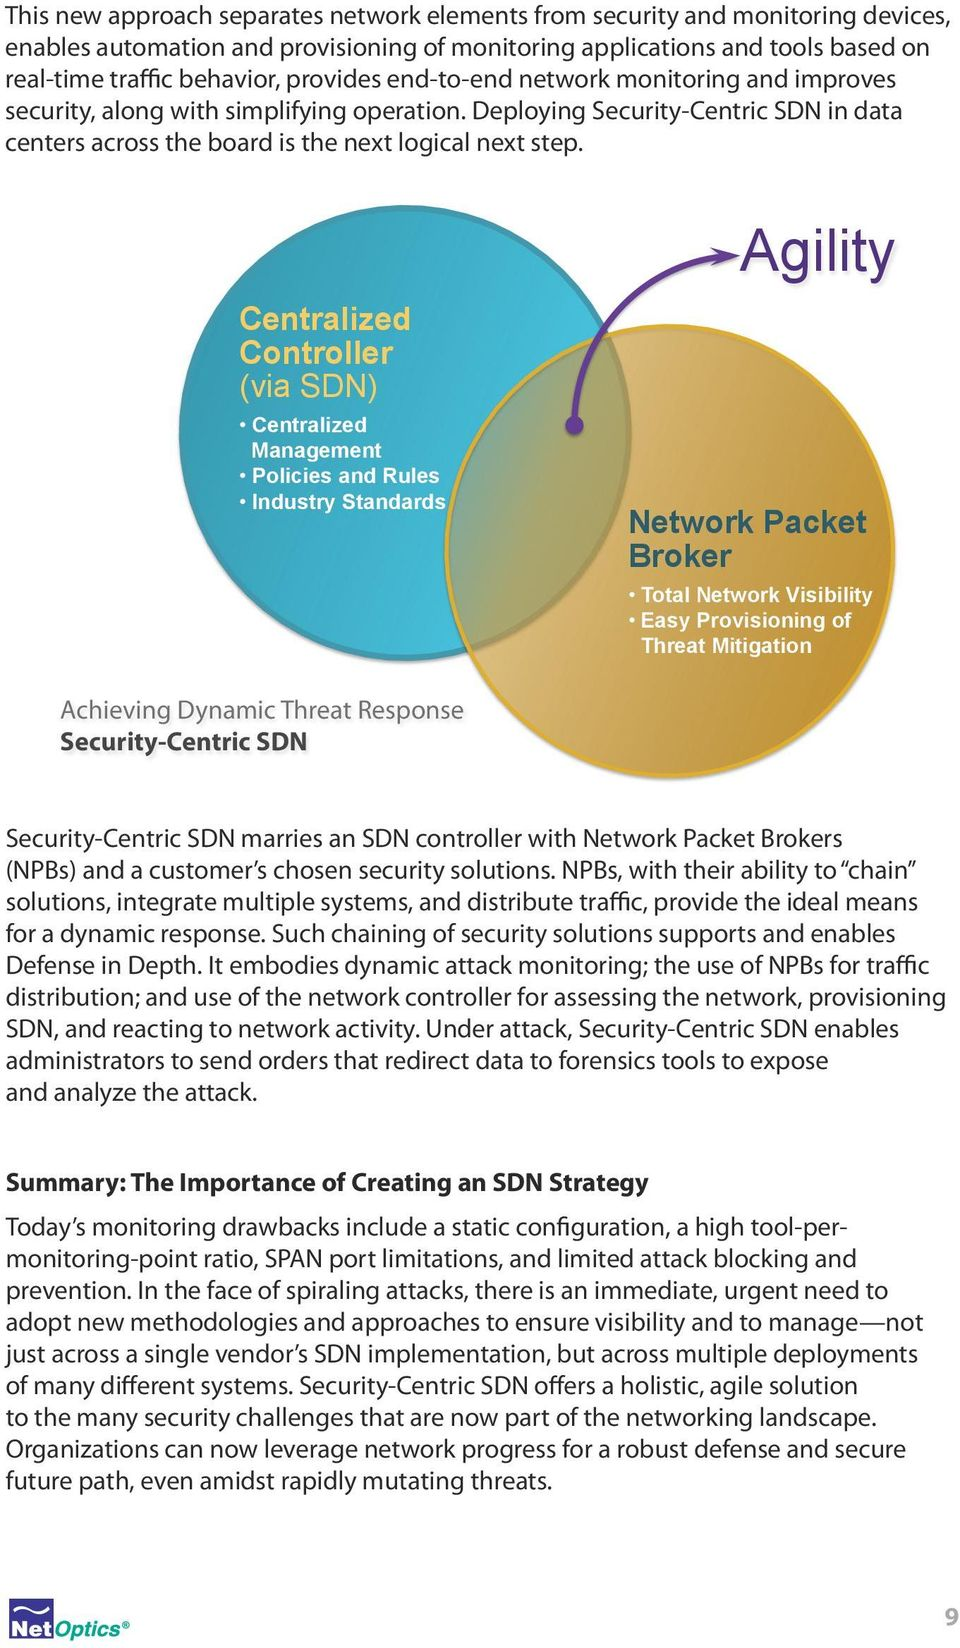 Centralized Controller (via SDN) Centralized Management Policies and Rules Industry Standards Agility Network Packet Broker Total Network Visibility Easy Provisioning of Threat Mitigation Achieving